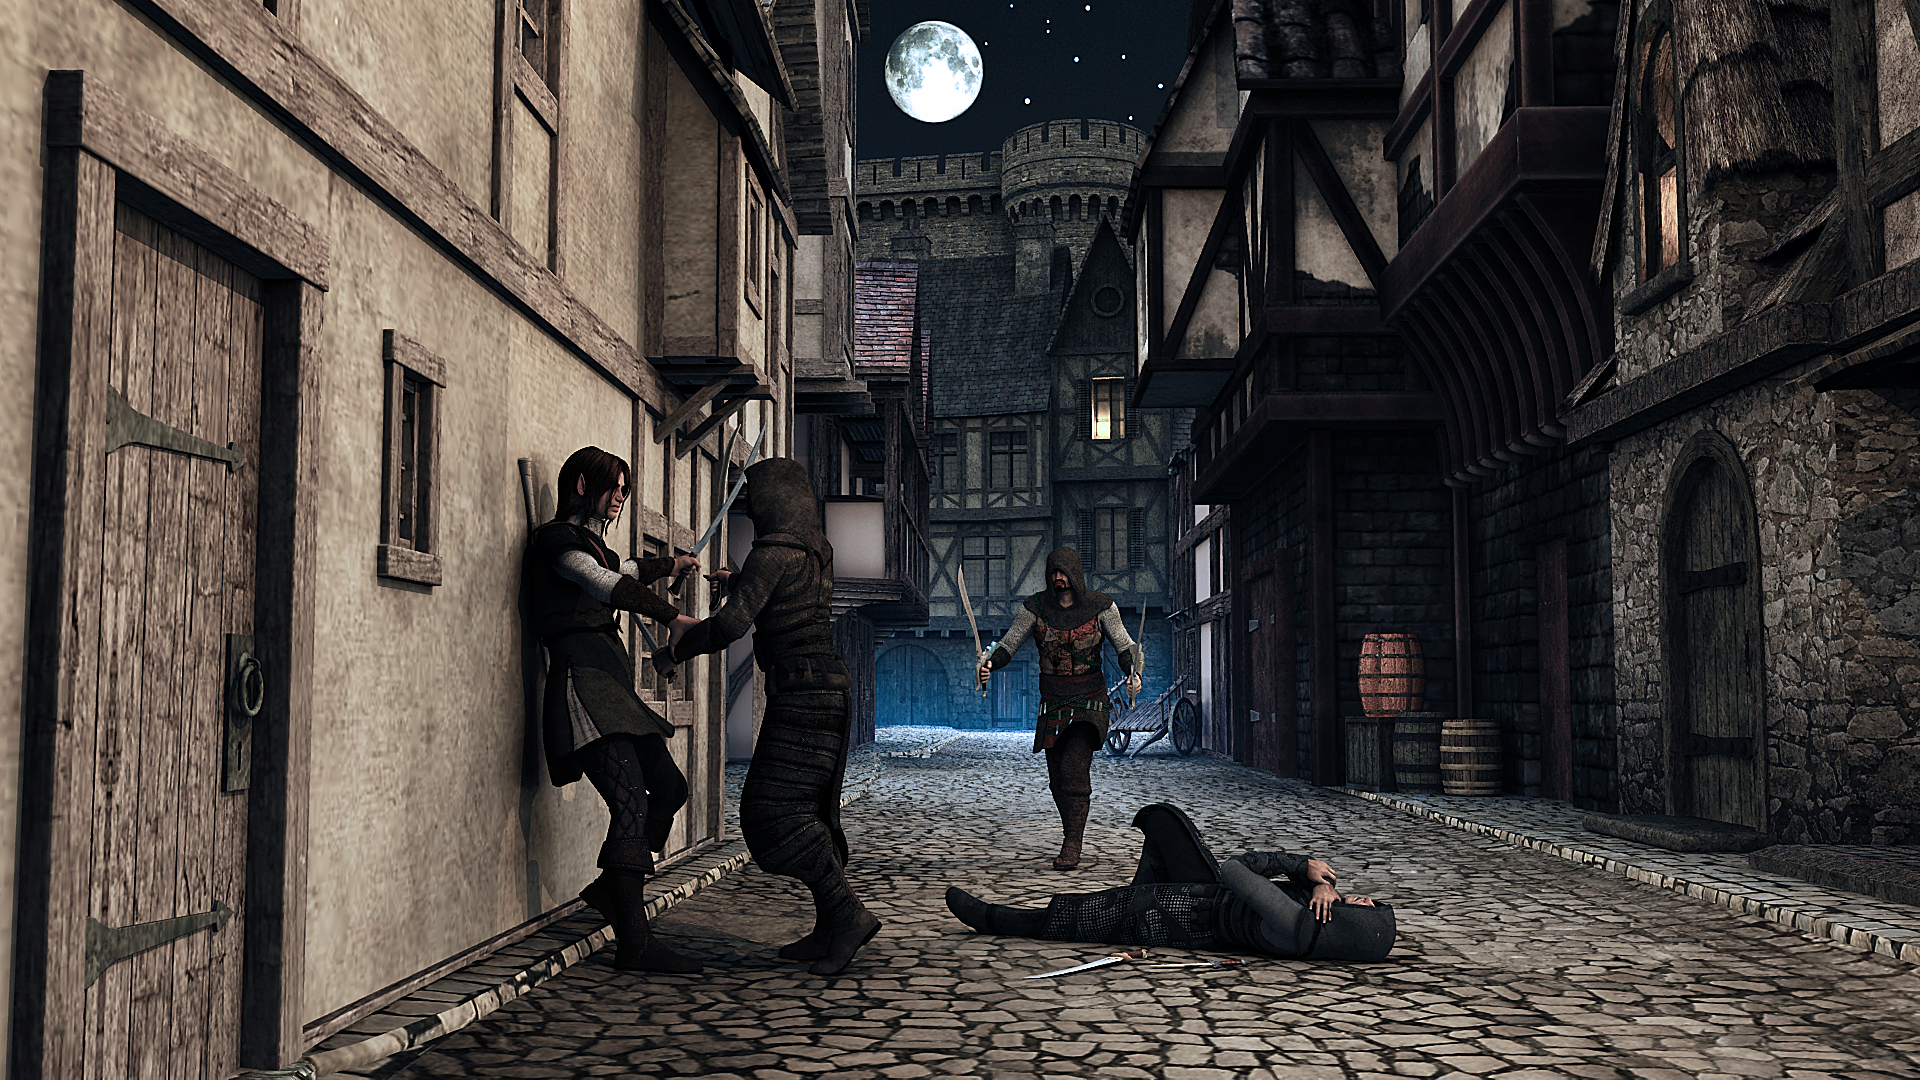 ambush_in_greyhawk_city_by_jmb200960-d8e651y.png